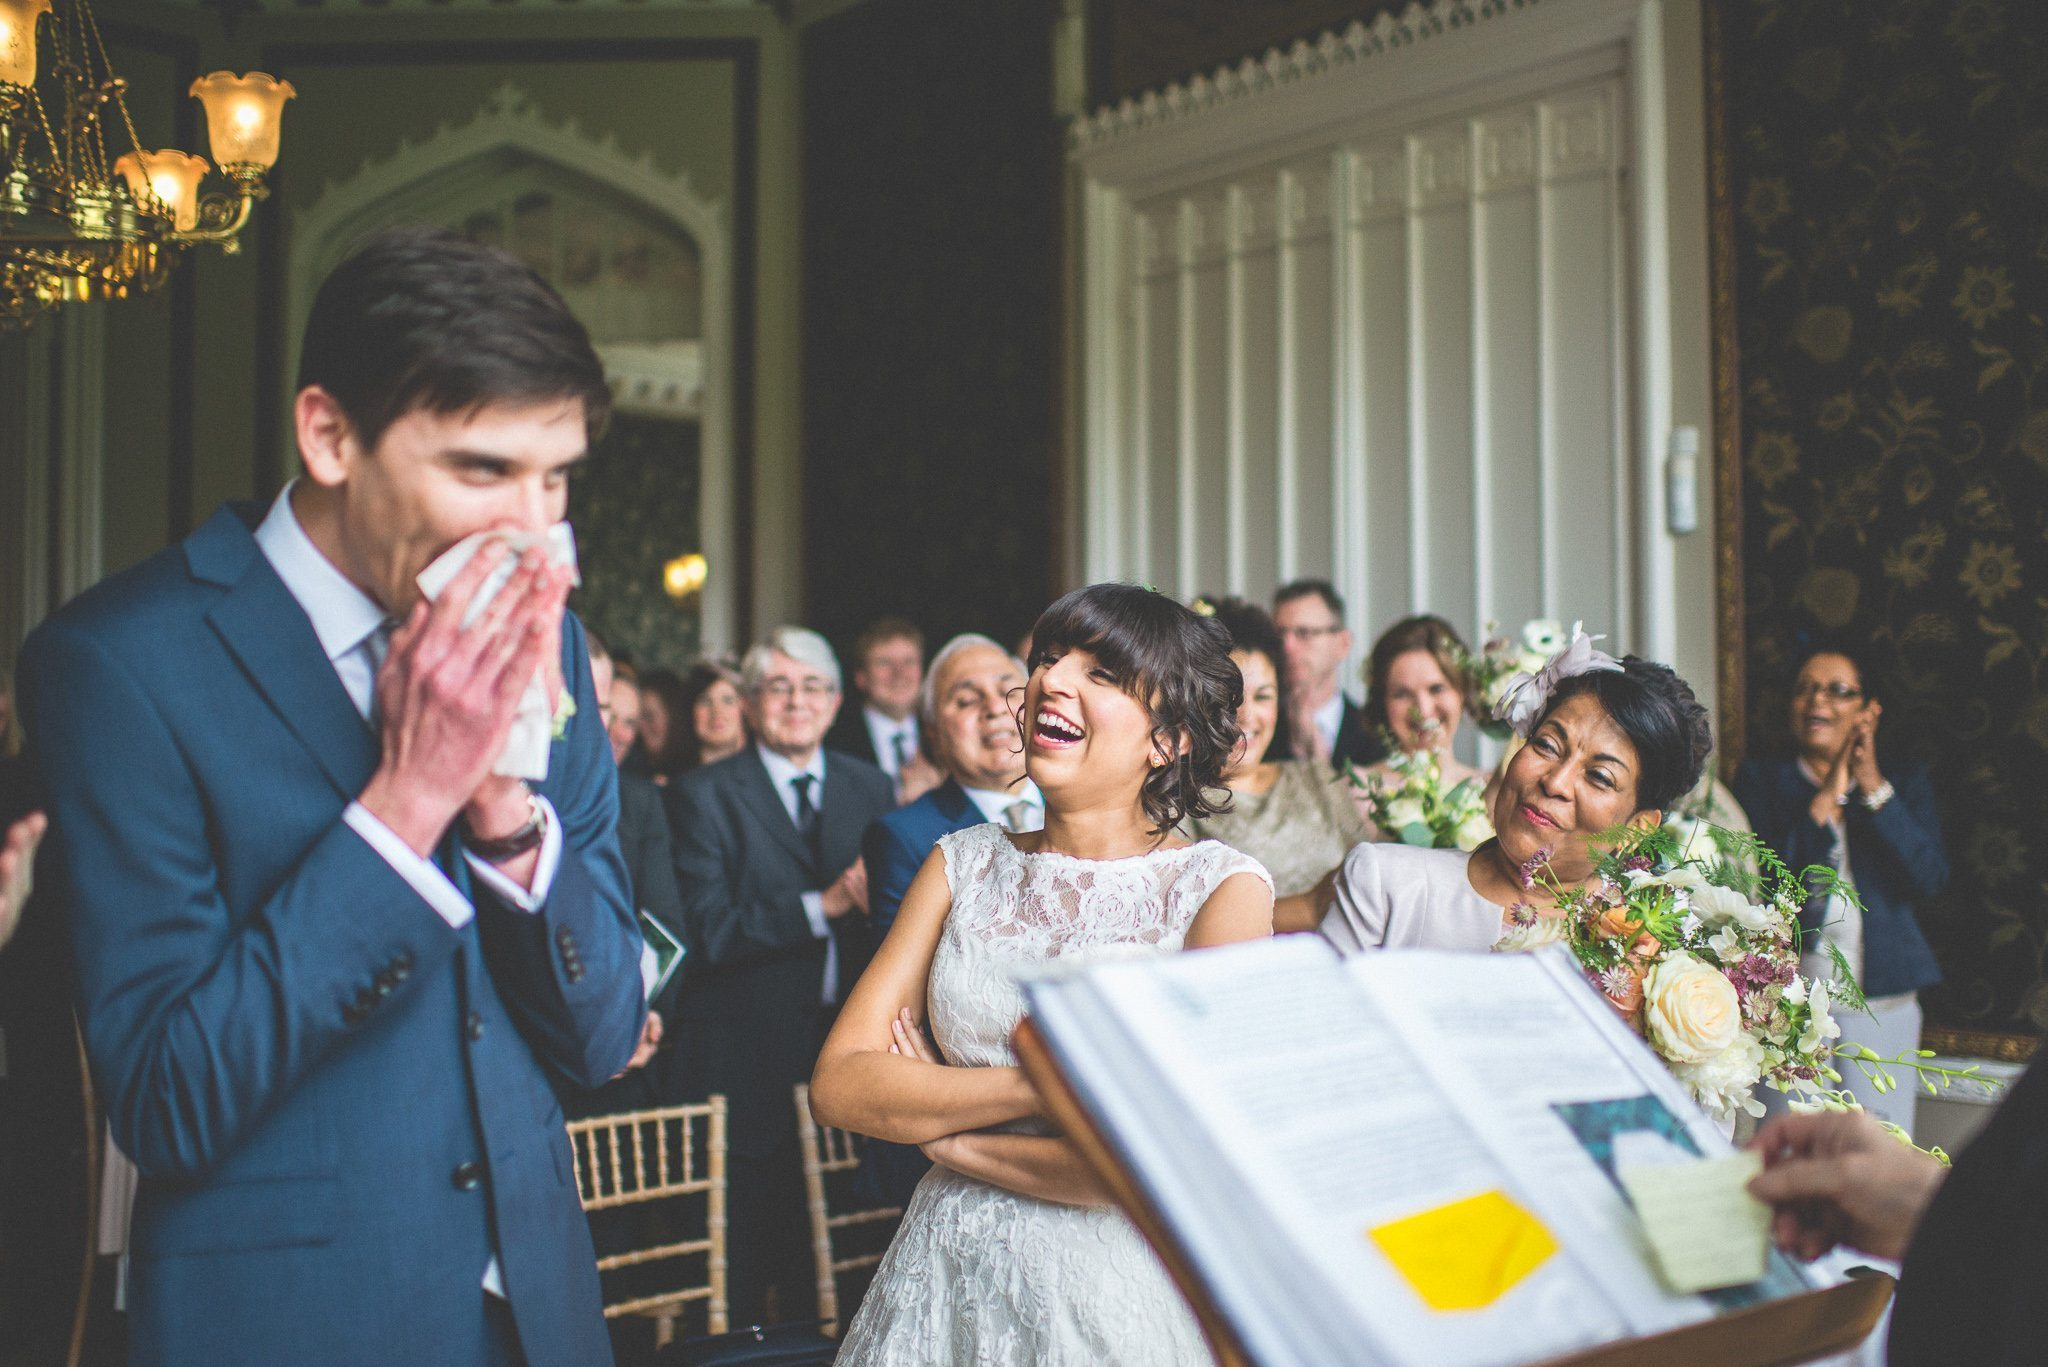 An emotional Andy blows his nose sheepishly, while his new bride bursts out laughing